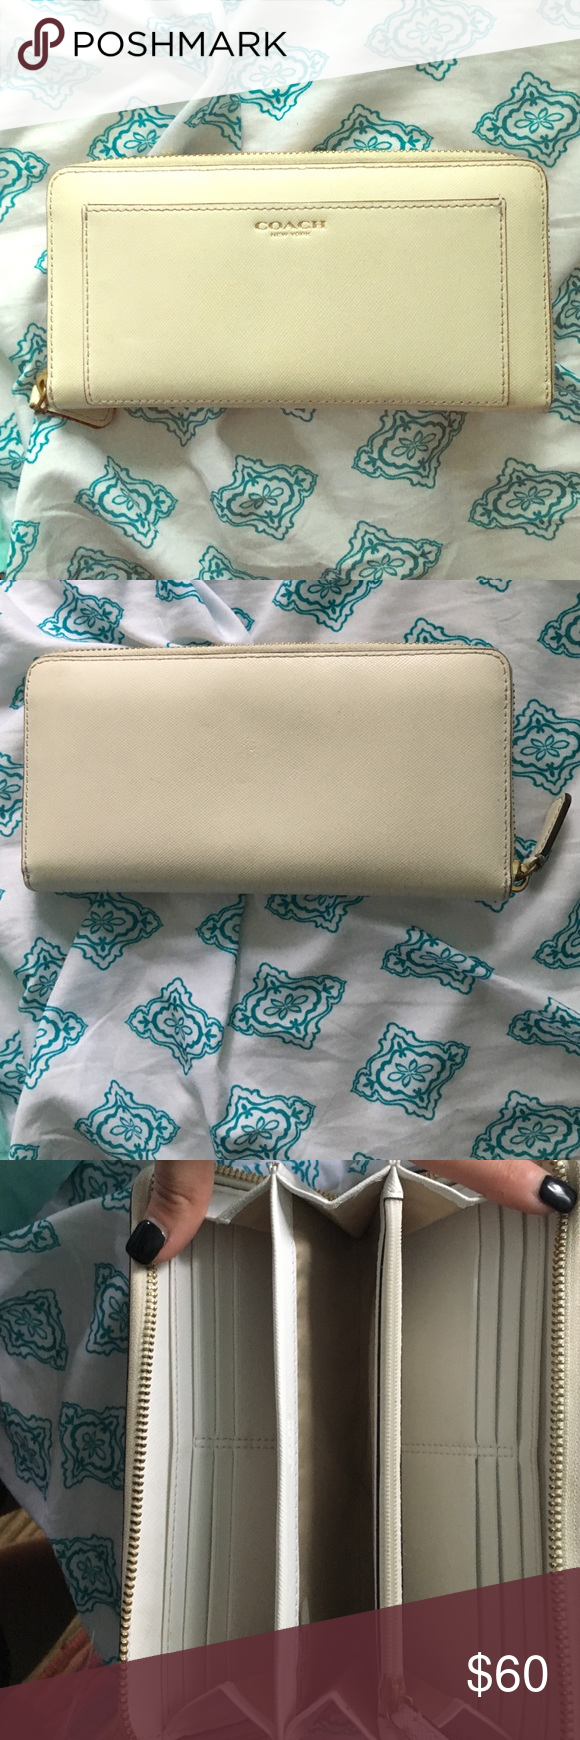 White Leather Coach Wallet Great condition! Coach Bags Wallets